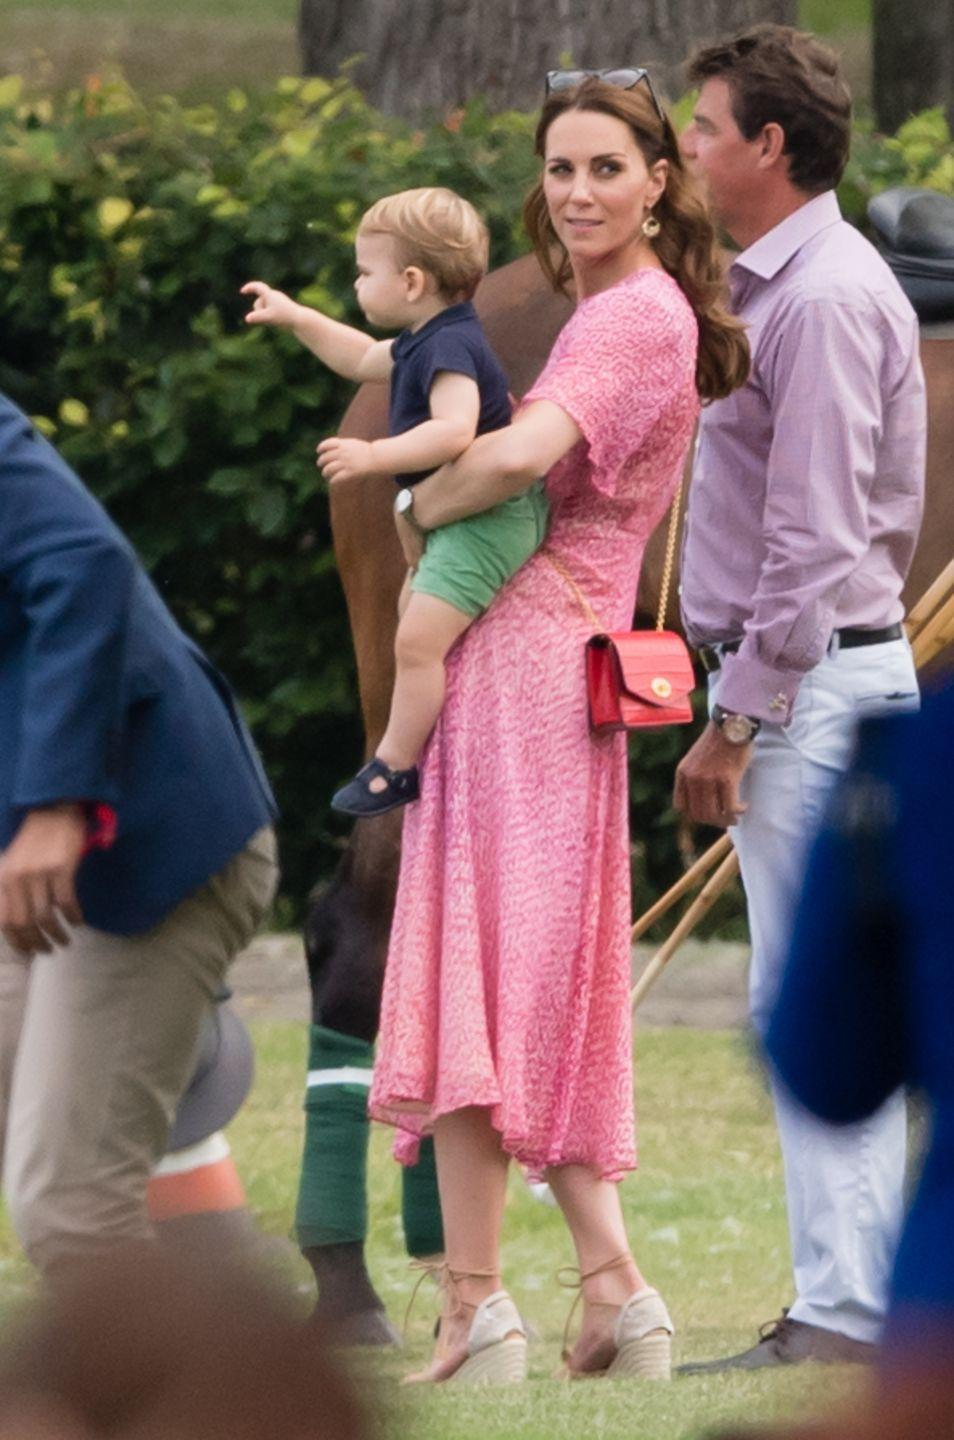 <p>Kate Middleton brought the kids to watch Prince William play in a polo match for charity—and spent quite a bit of time chasing around Prince Louis.</p>